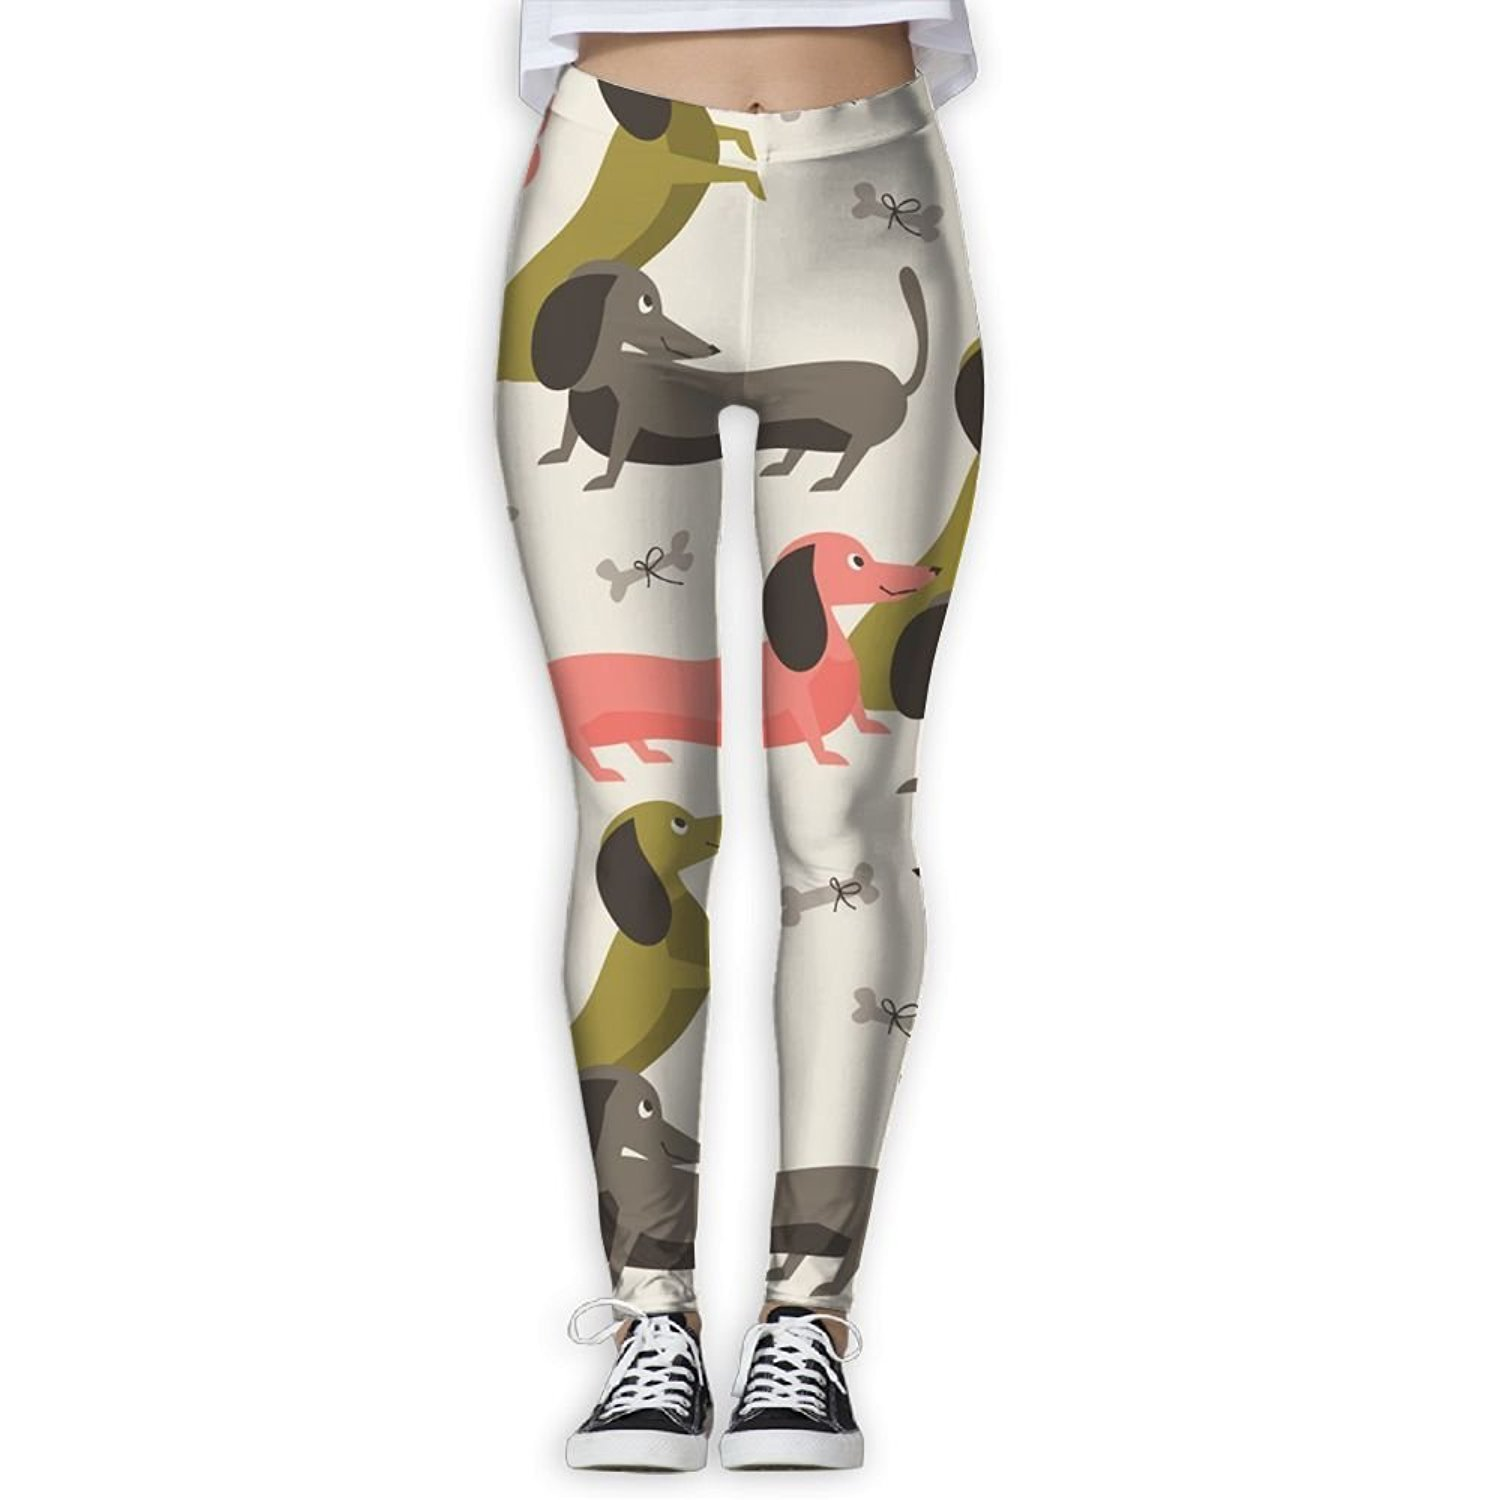 4fcbba4bcb129 Get Quotations · KUKUUU Dachshund Puppy Youth Thermal Yoga Pants Workout  Leggings Football Tight Pants